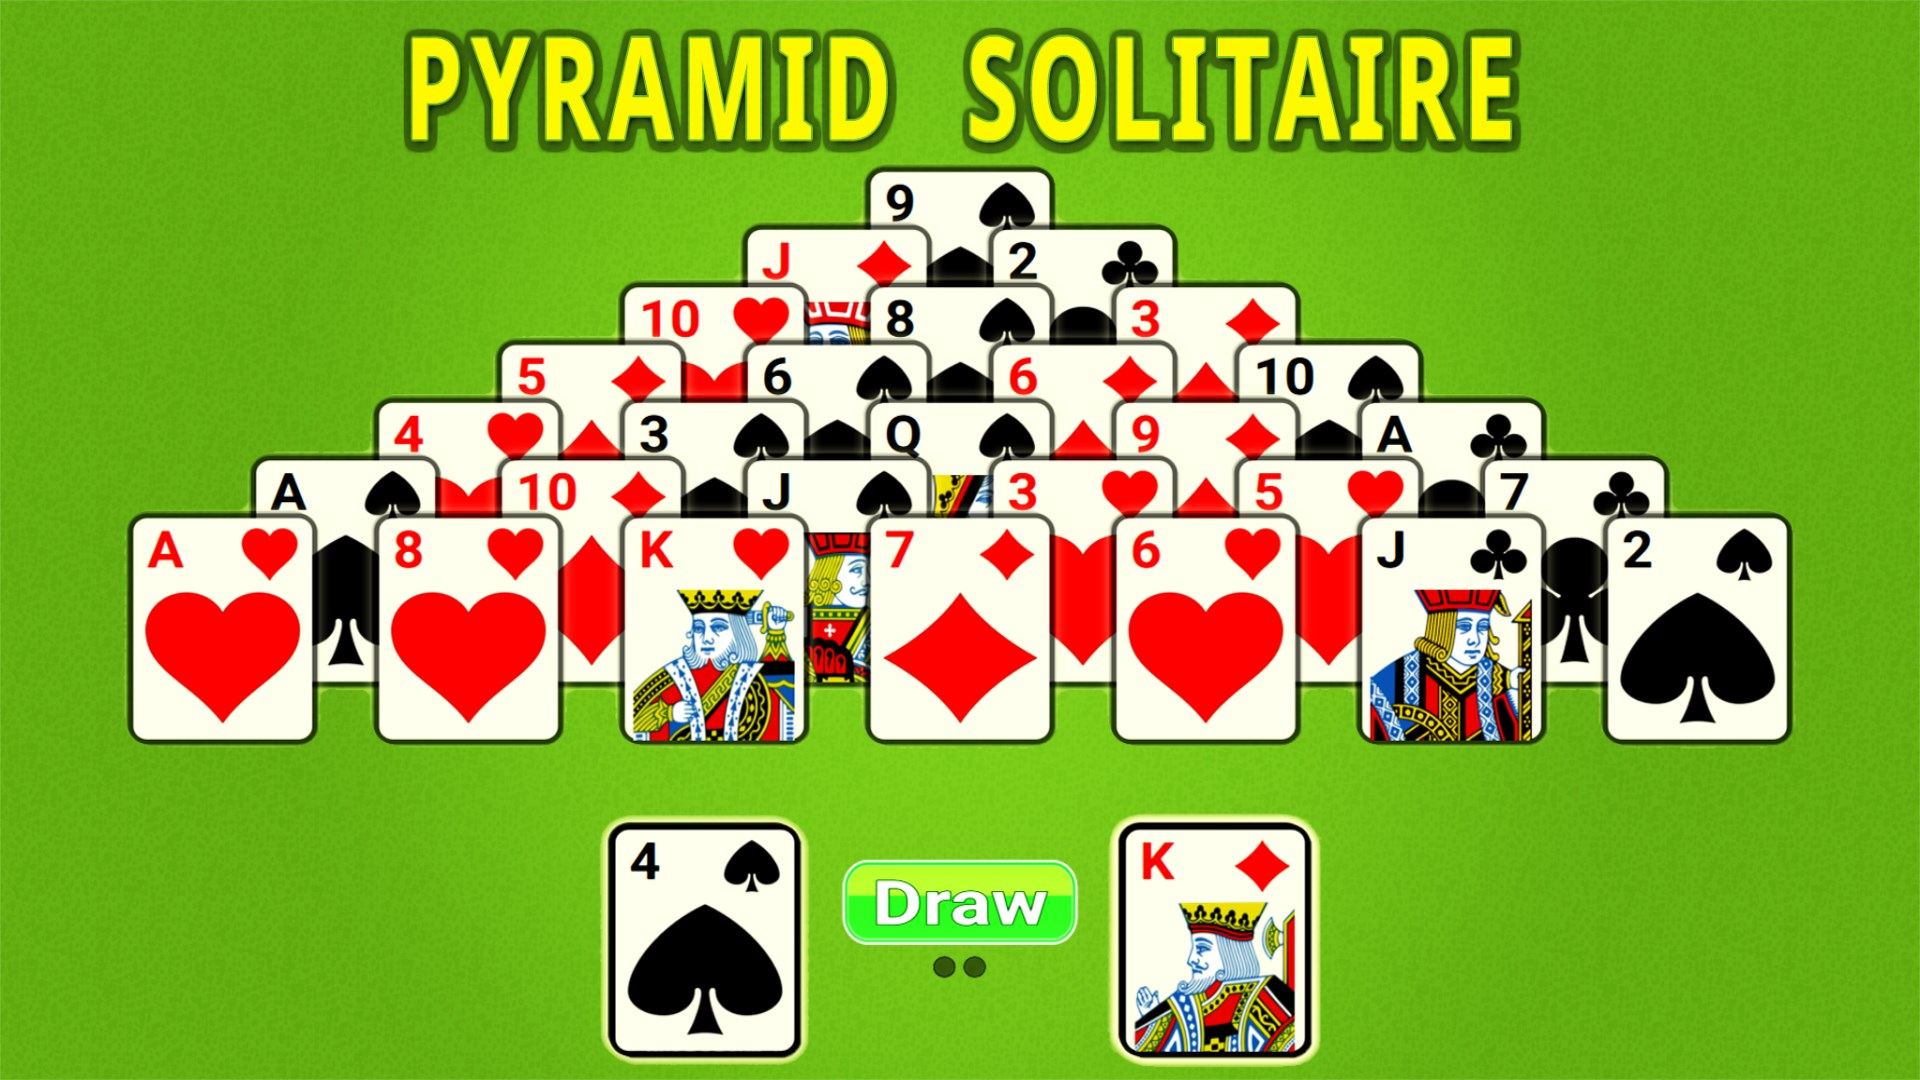 Pyramid Soliaire